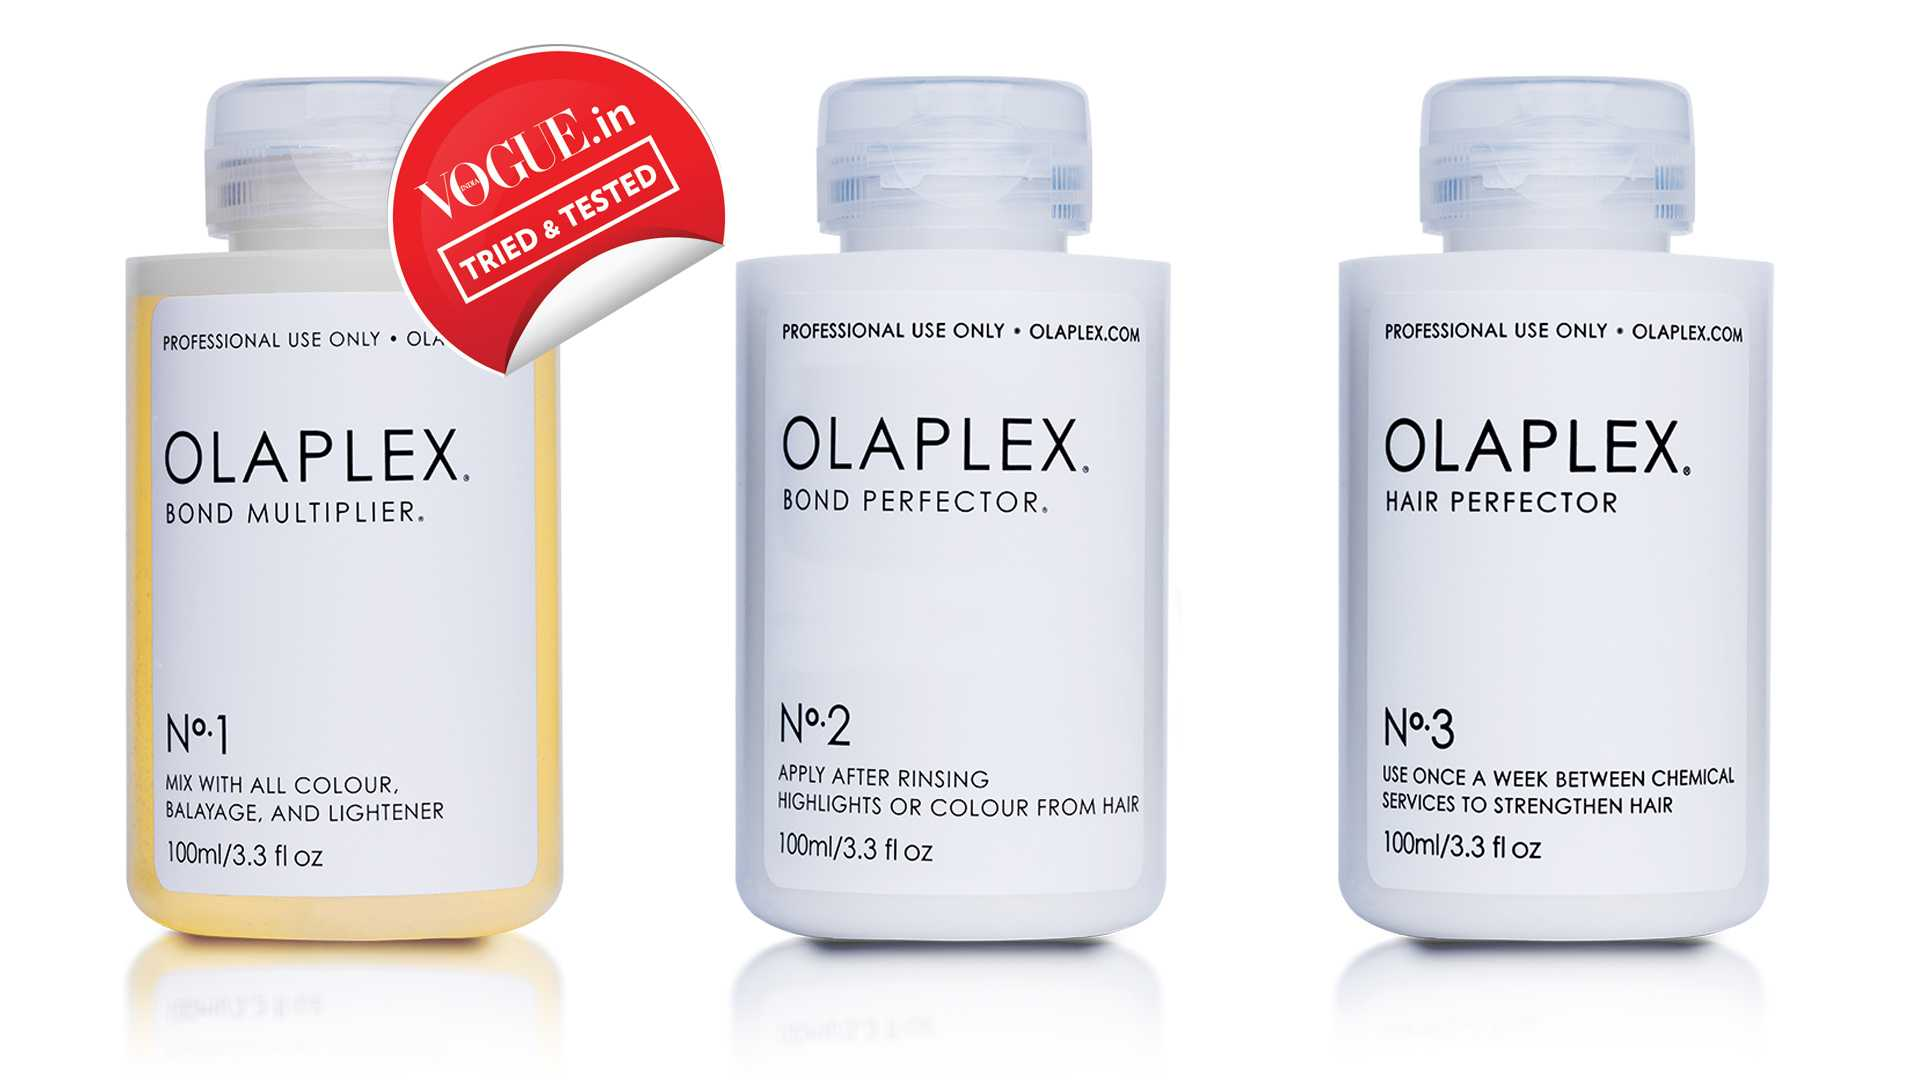 How To Repair Bleached And Damaged Hair Fast: Does OlaPlex help?